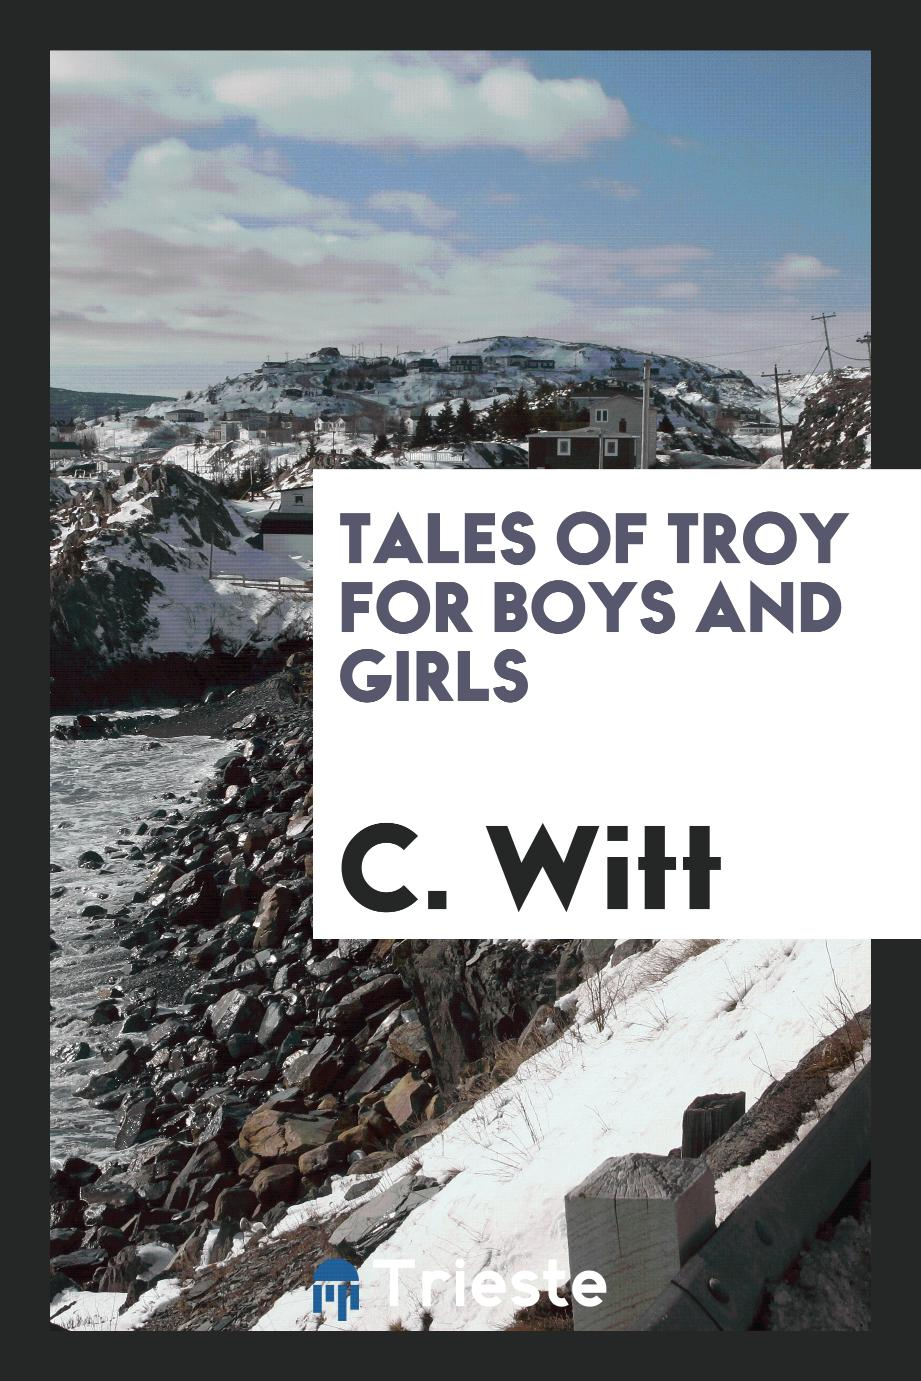 Tales of Troy for boys and girls